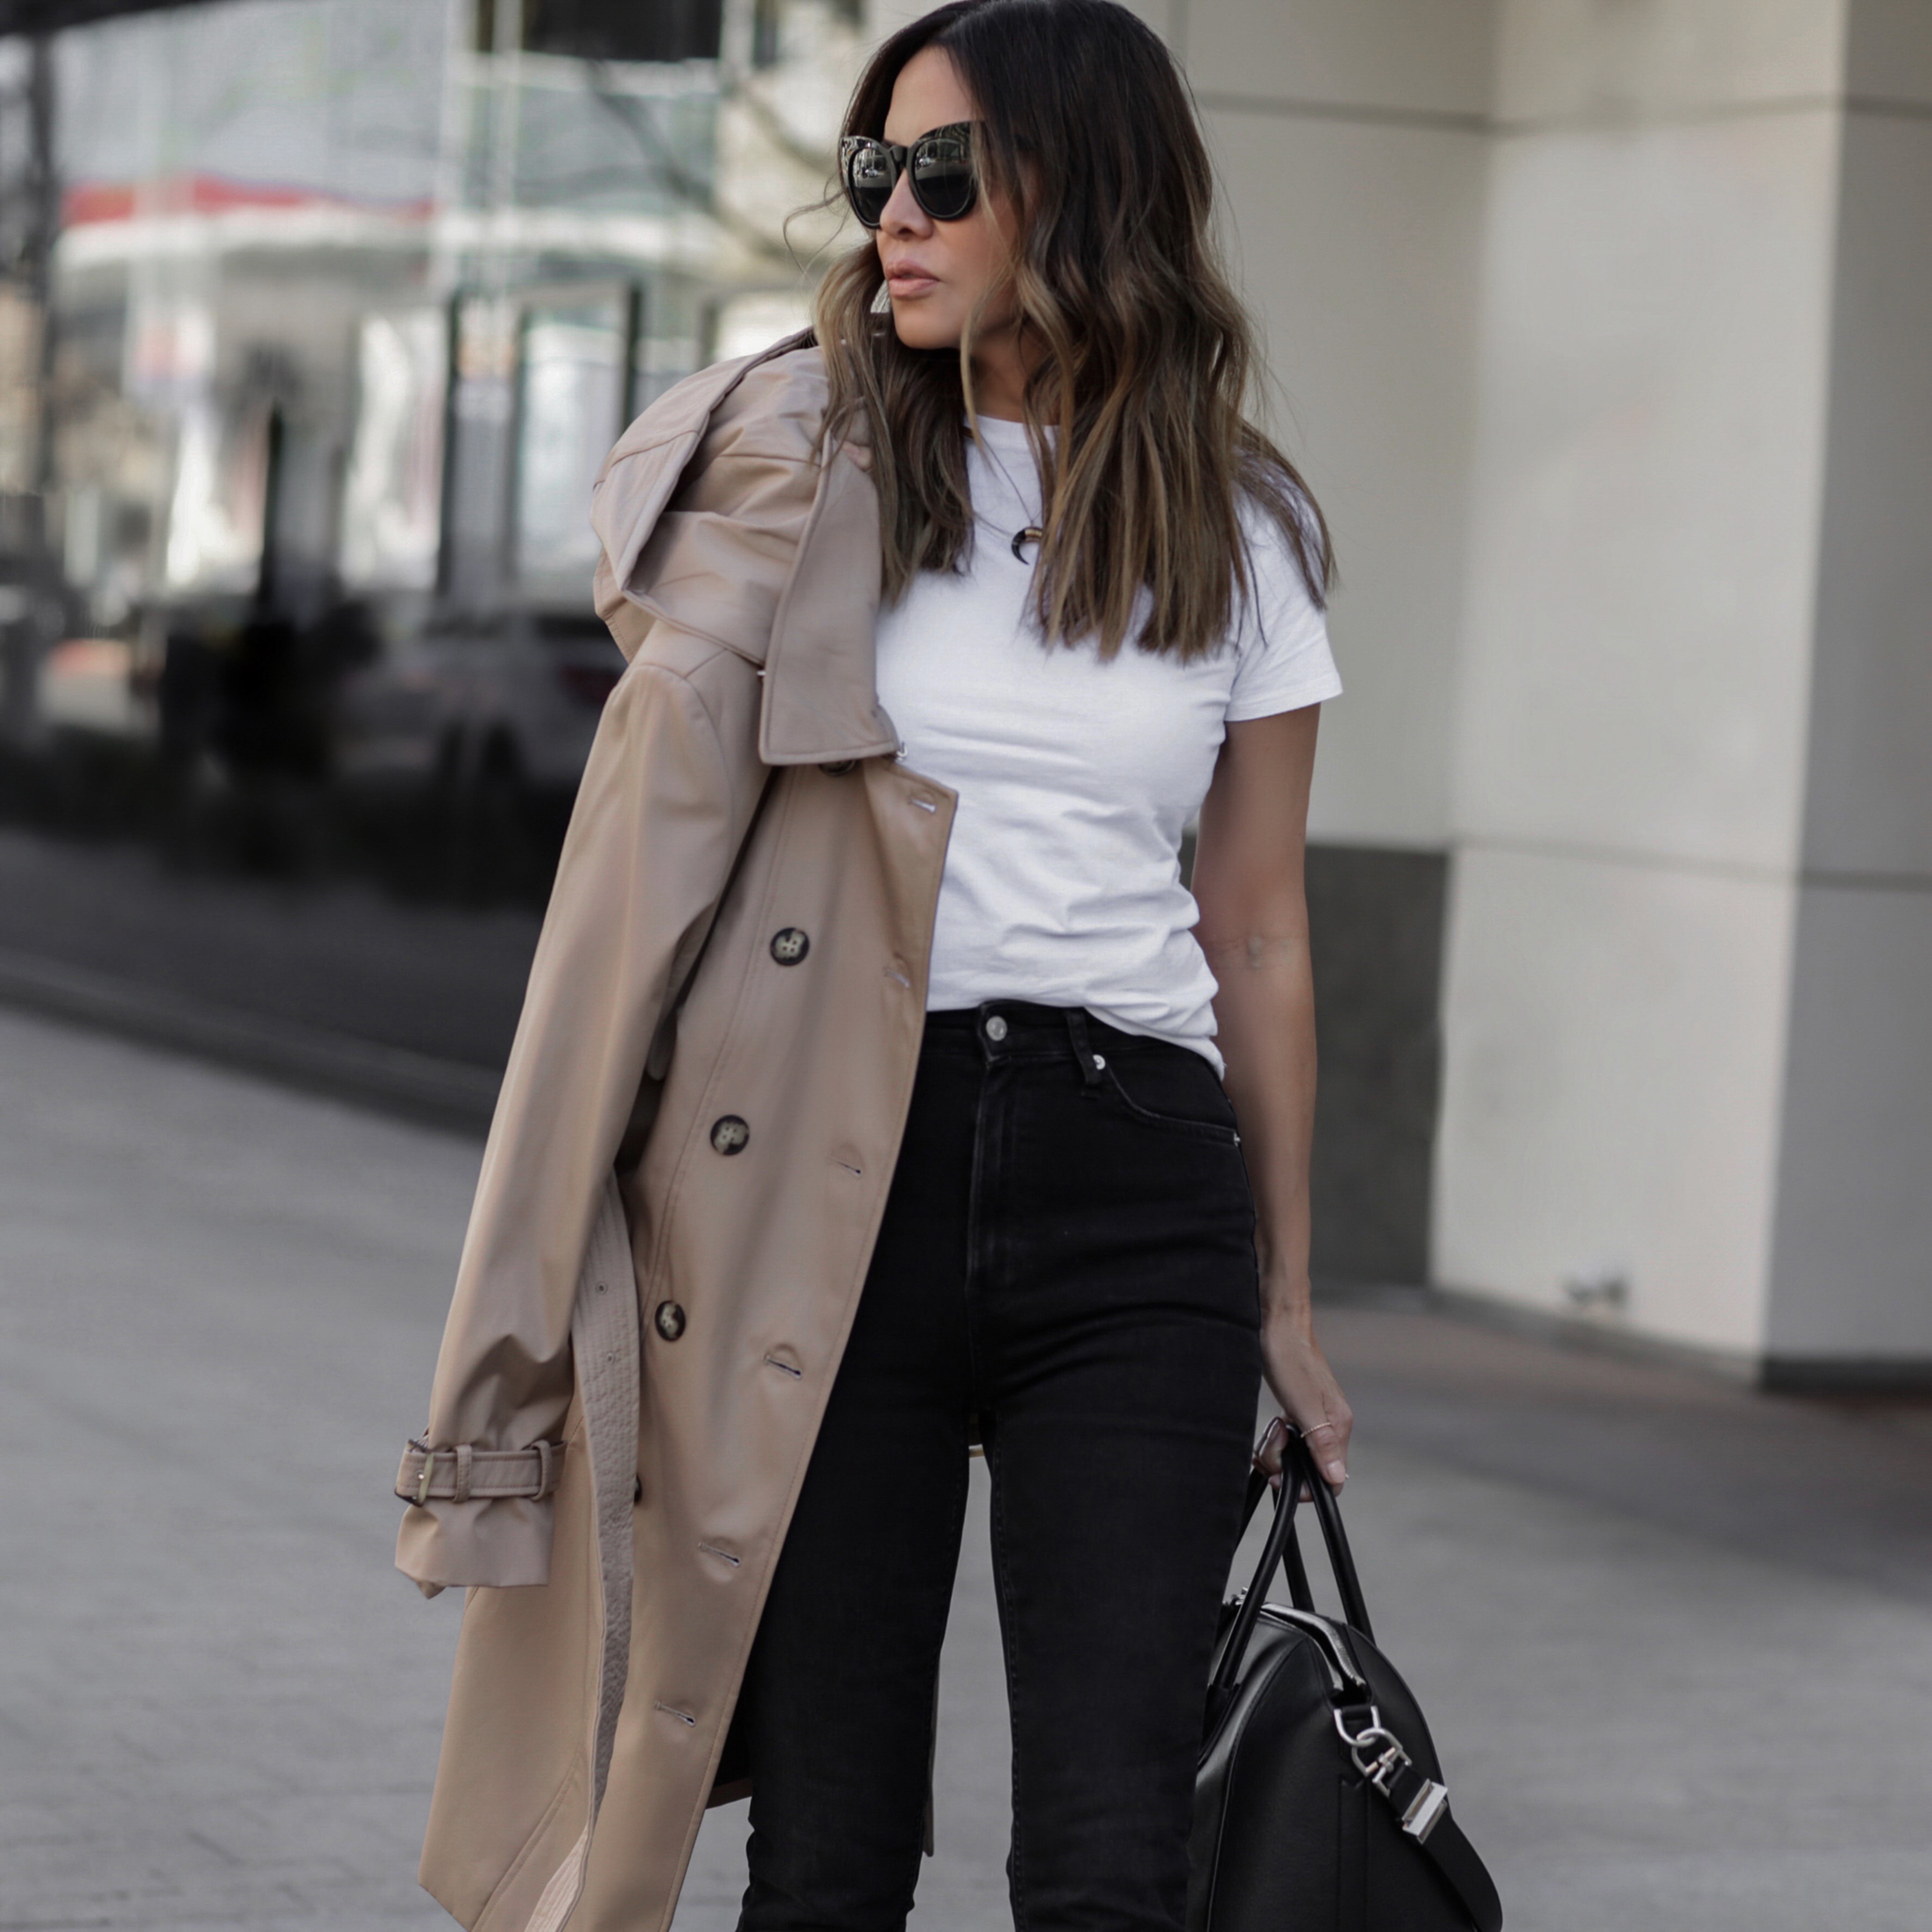 spring fashion trends 2019, spring fashion trends on a budget, lolario style blogger in black jeans and trench coat